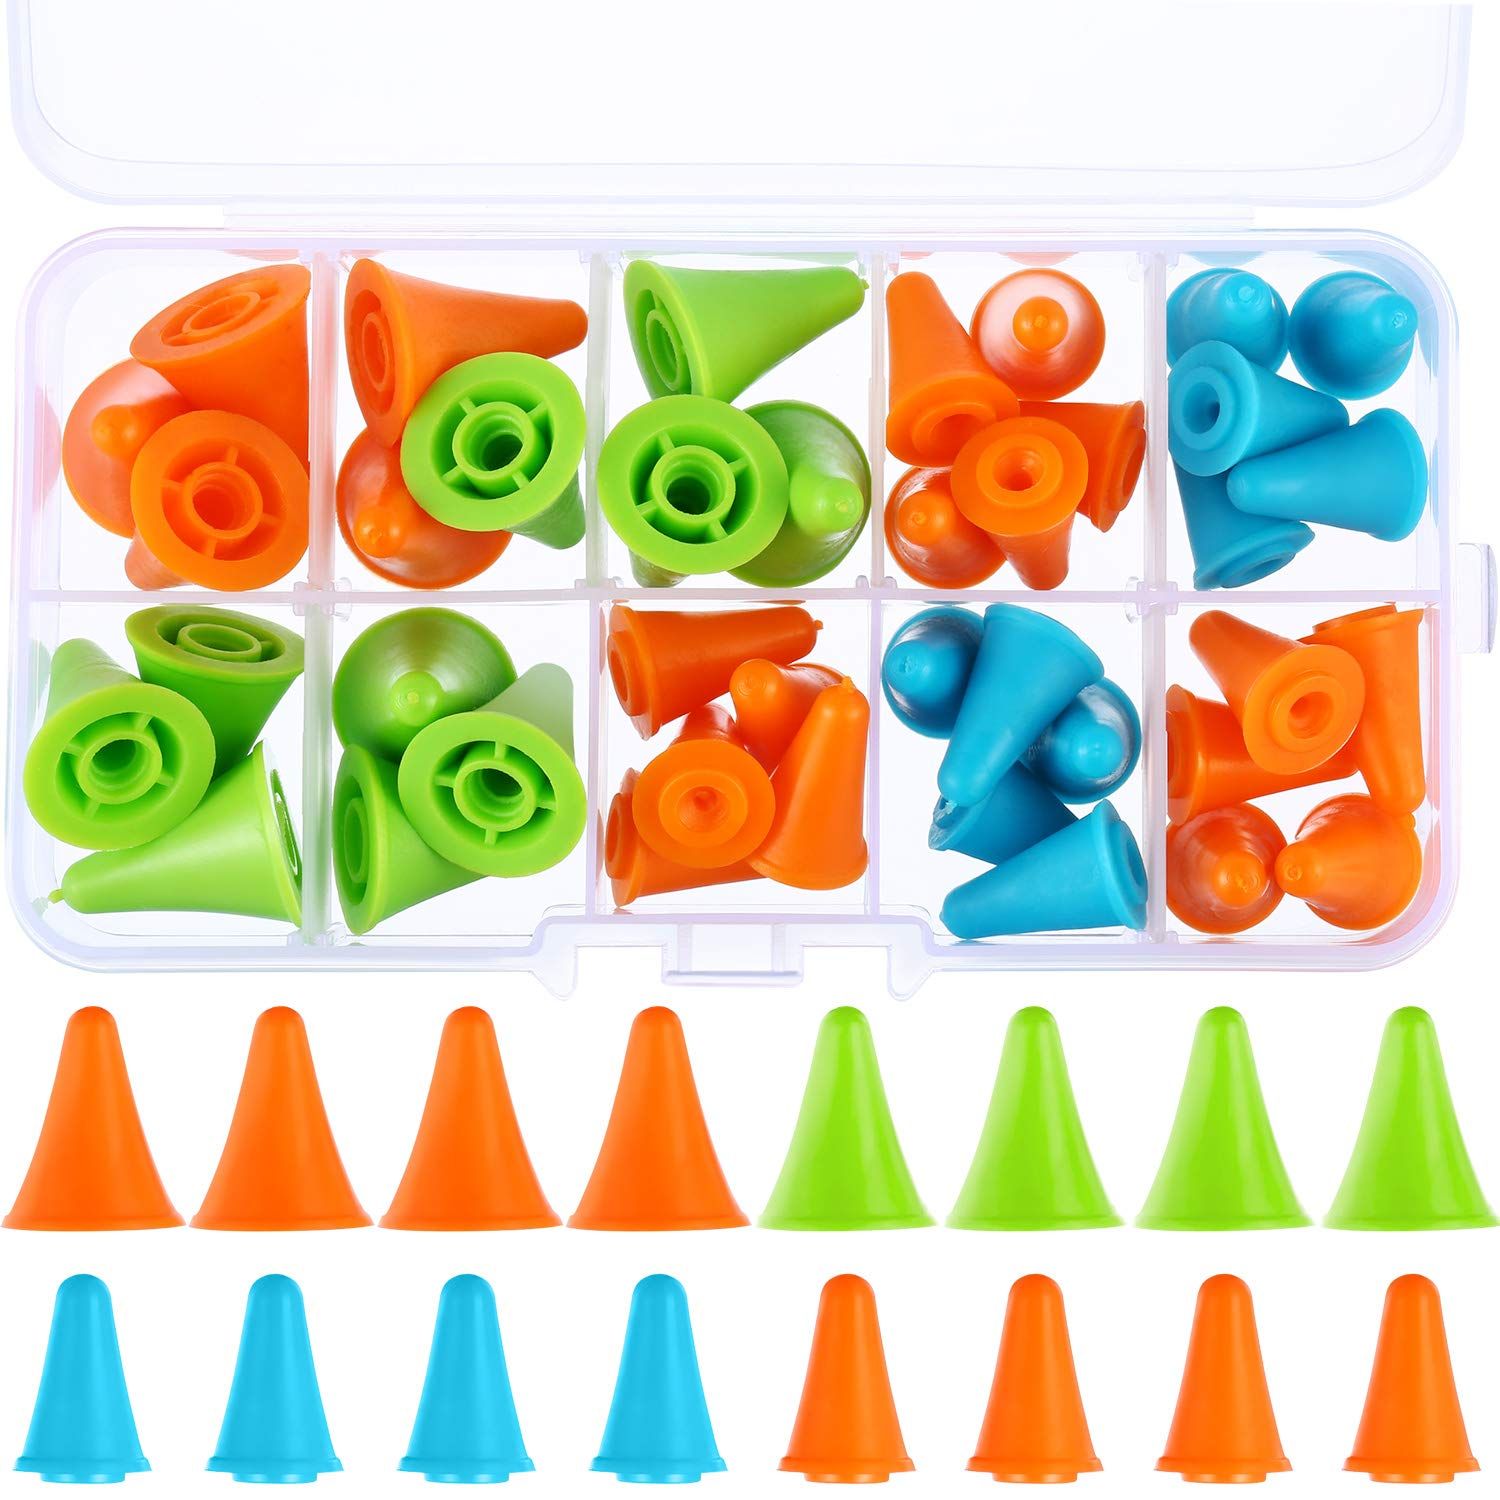 40 Pieces Multi-Colored Needle Point Stoppers Needle Point Protectors Needles Knitting Accessories with Plastic Storage Box, 2 Sizes Blulu